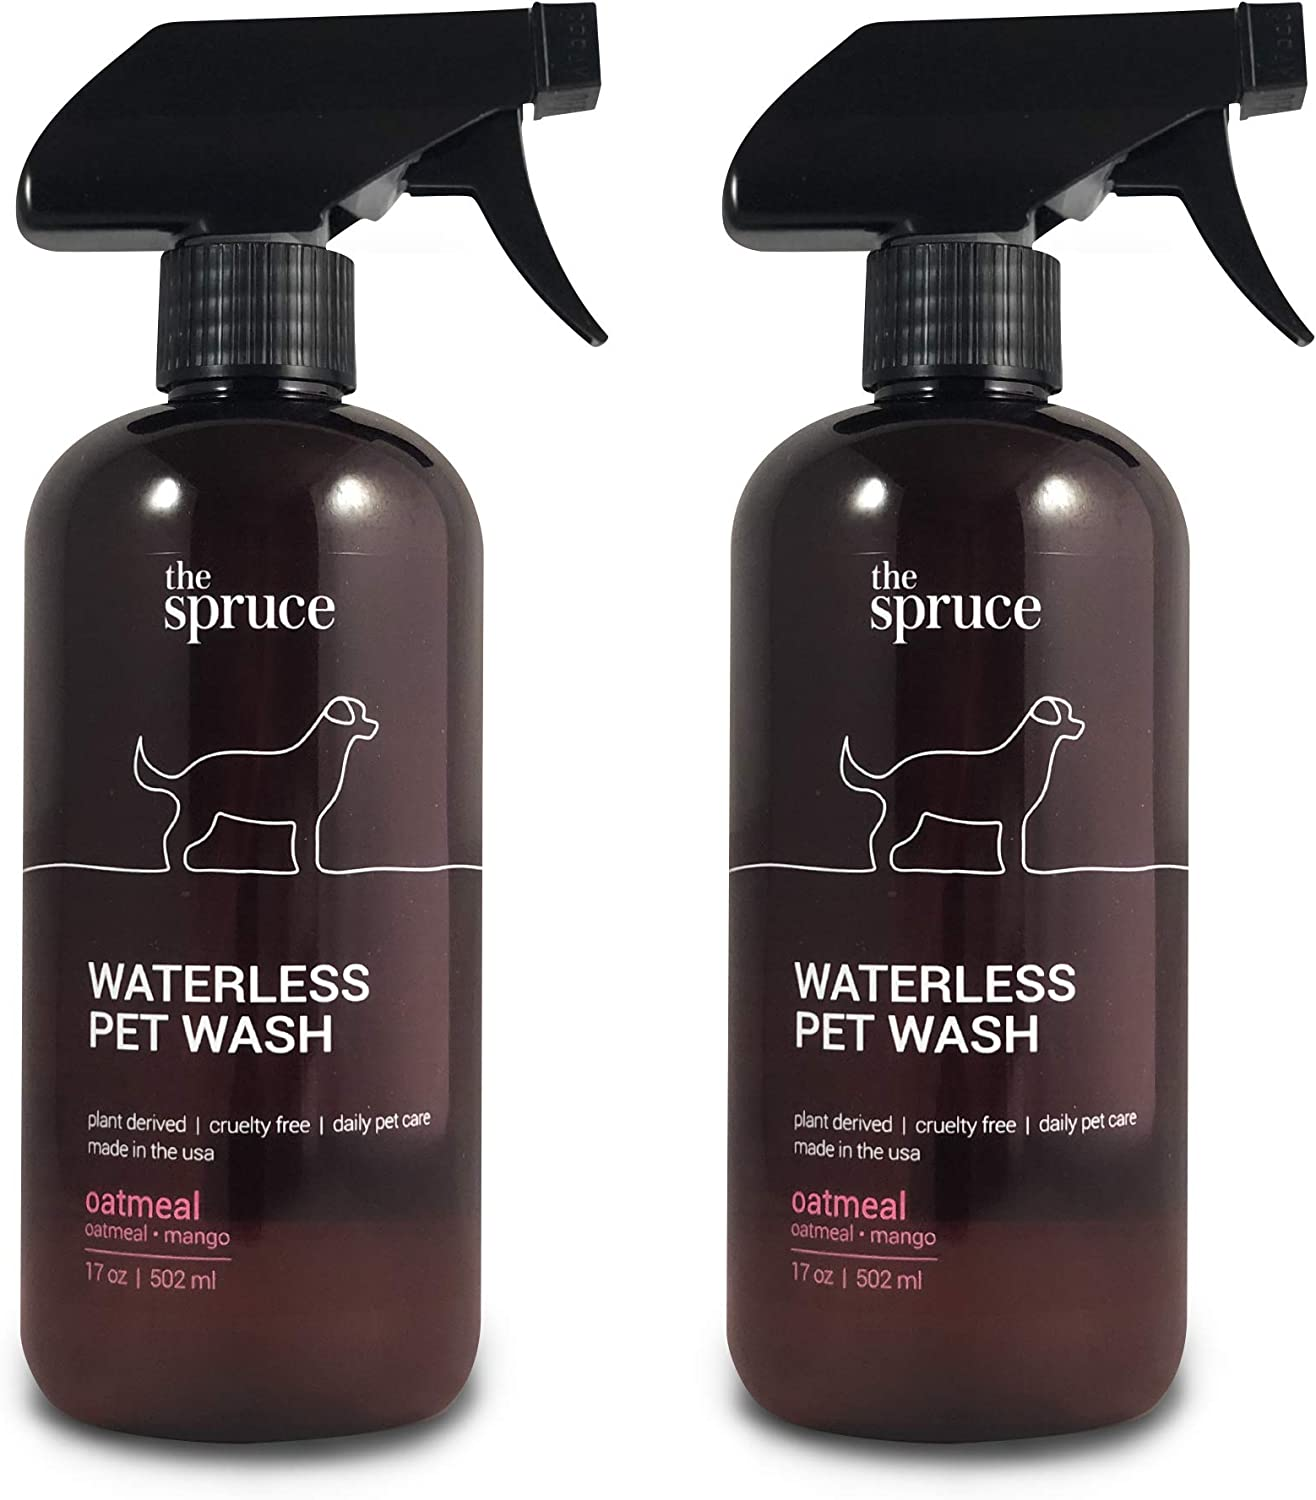 The Spruce Waterless Pet Wash, No Rinse Moisturizing Shampoo for Pets - Daily Pet Care - Cleaning, Cleansing, and Conditioning for Dogs, Puppies, and Cats - 17 oz